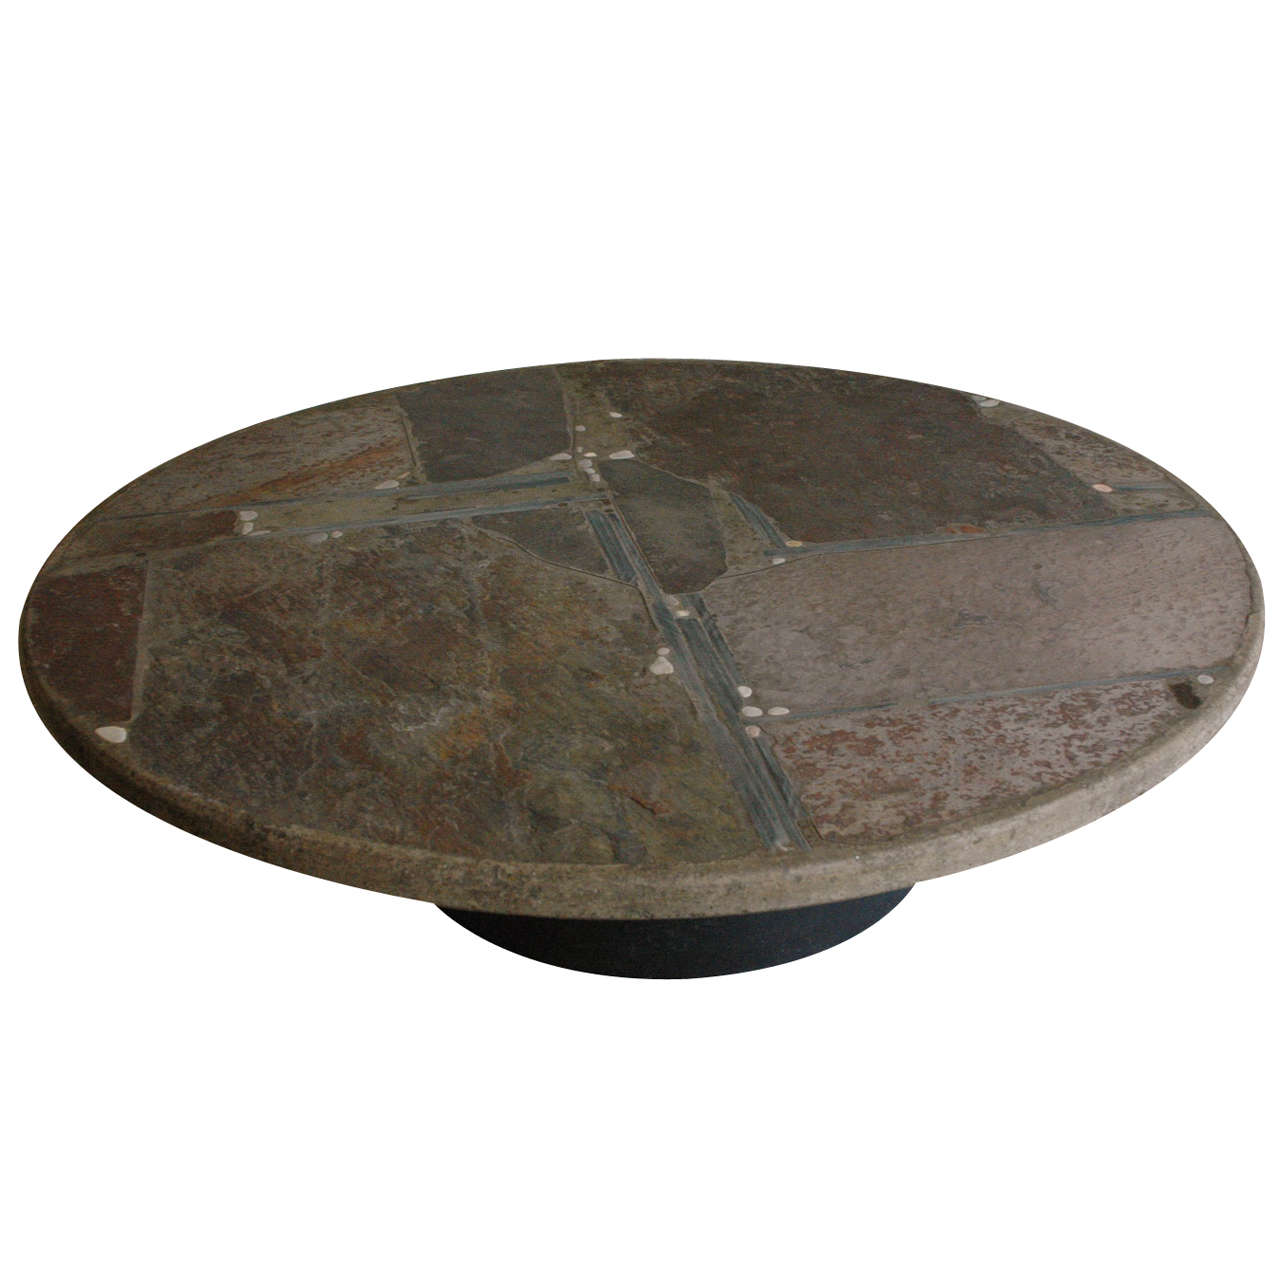 Paul kingma slate stone coffee table at 1stdibs Stone coffee table